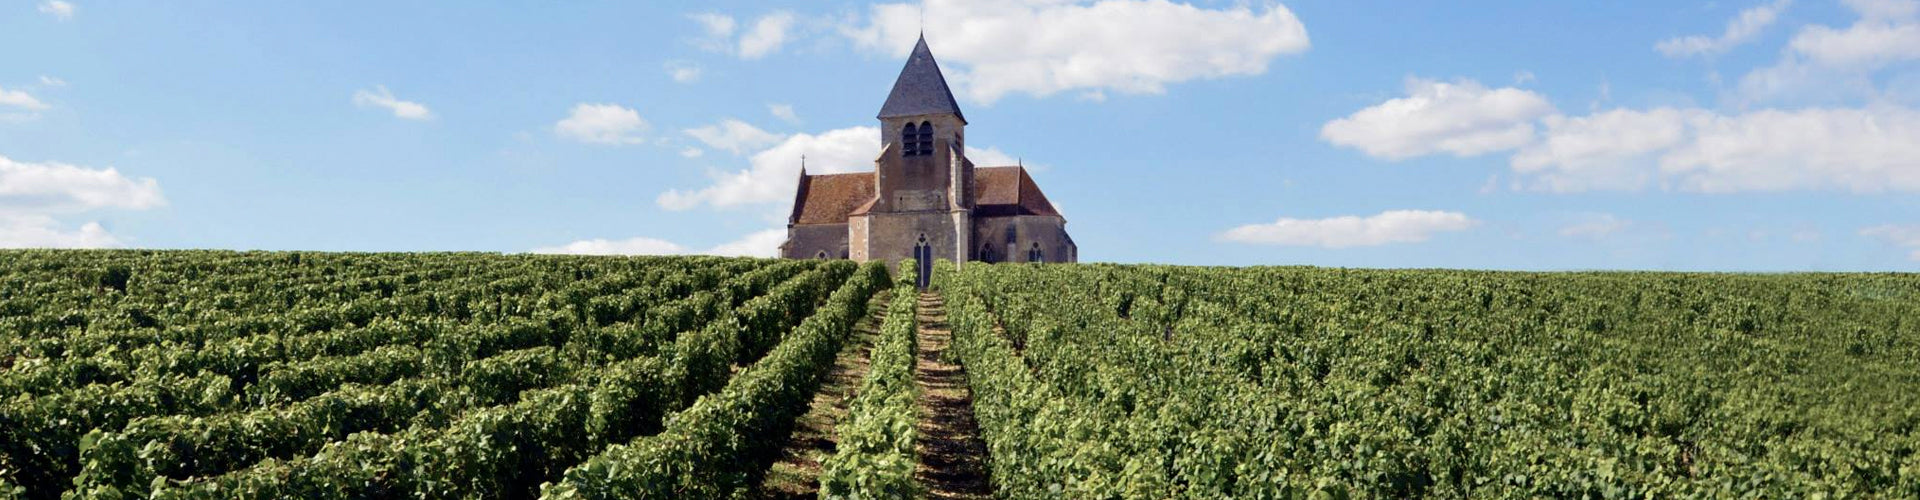 Jean-Marc Brocard Vineyards with Vézelay Abbey in Background